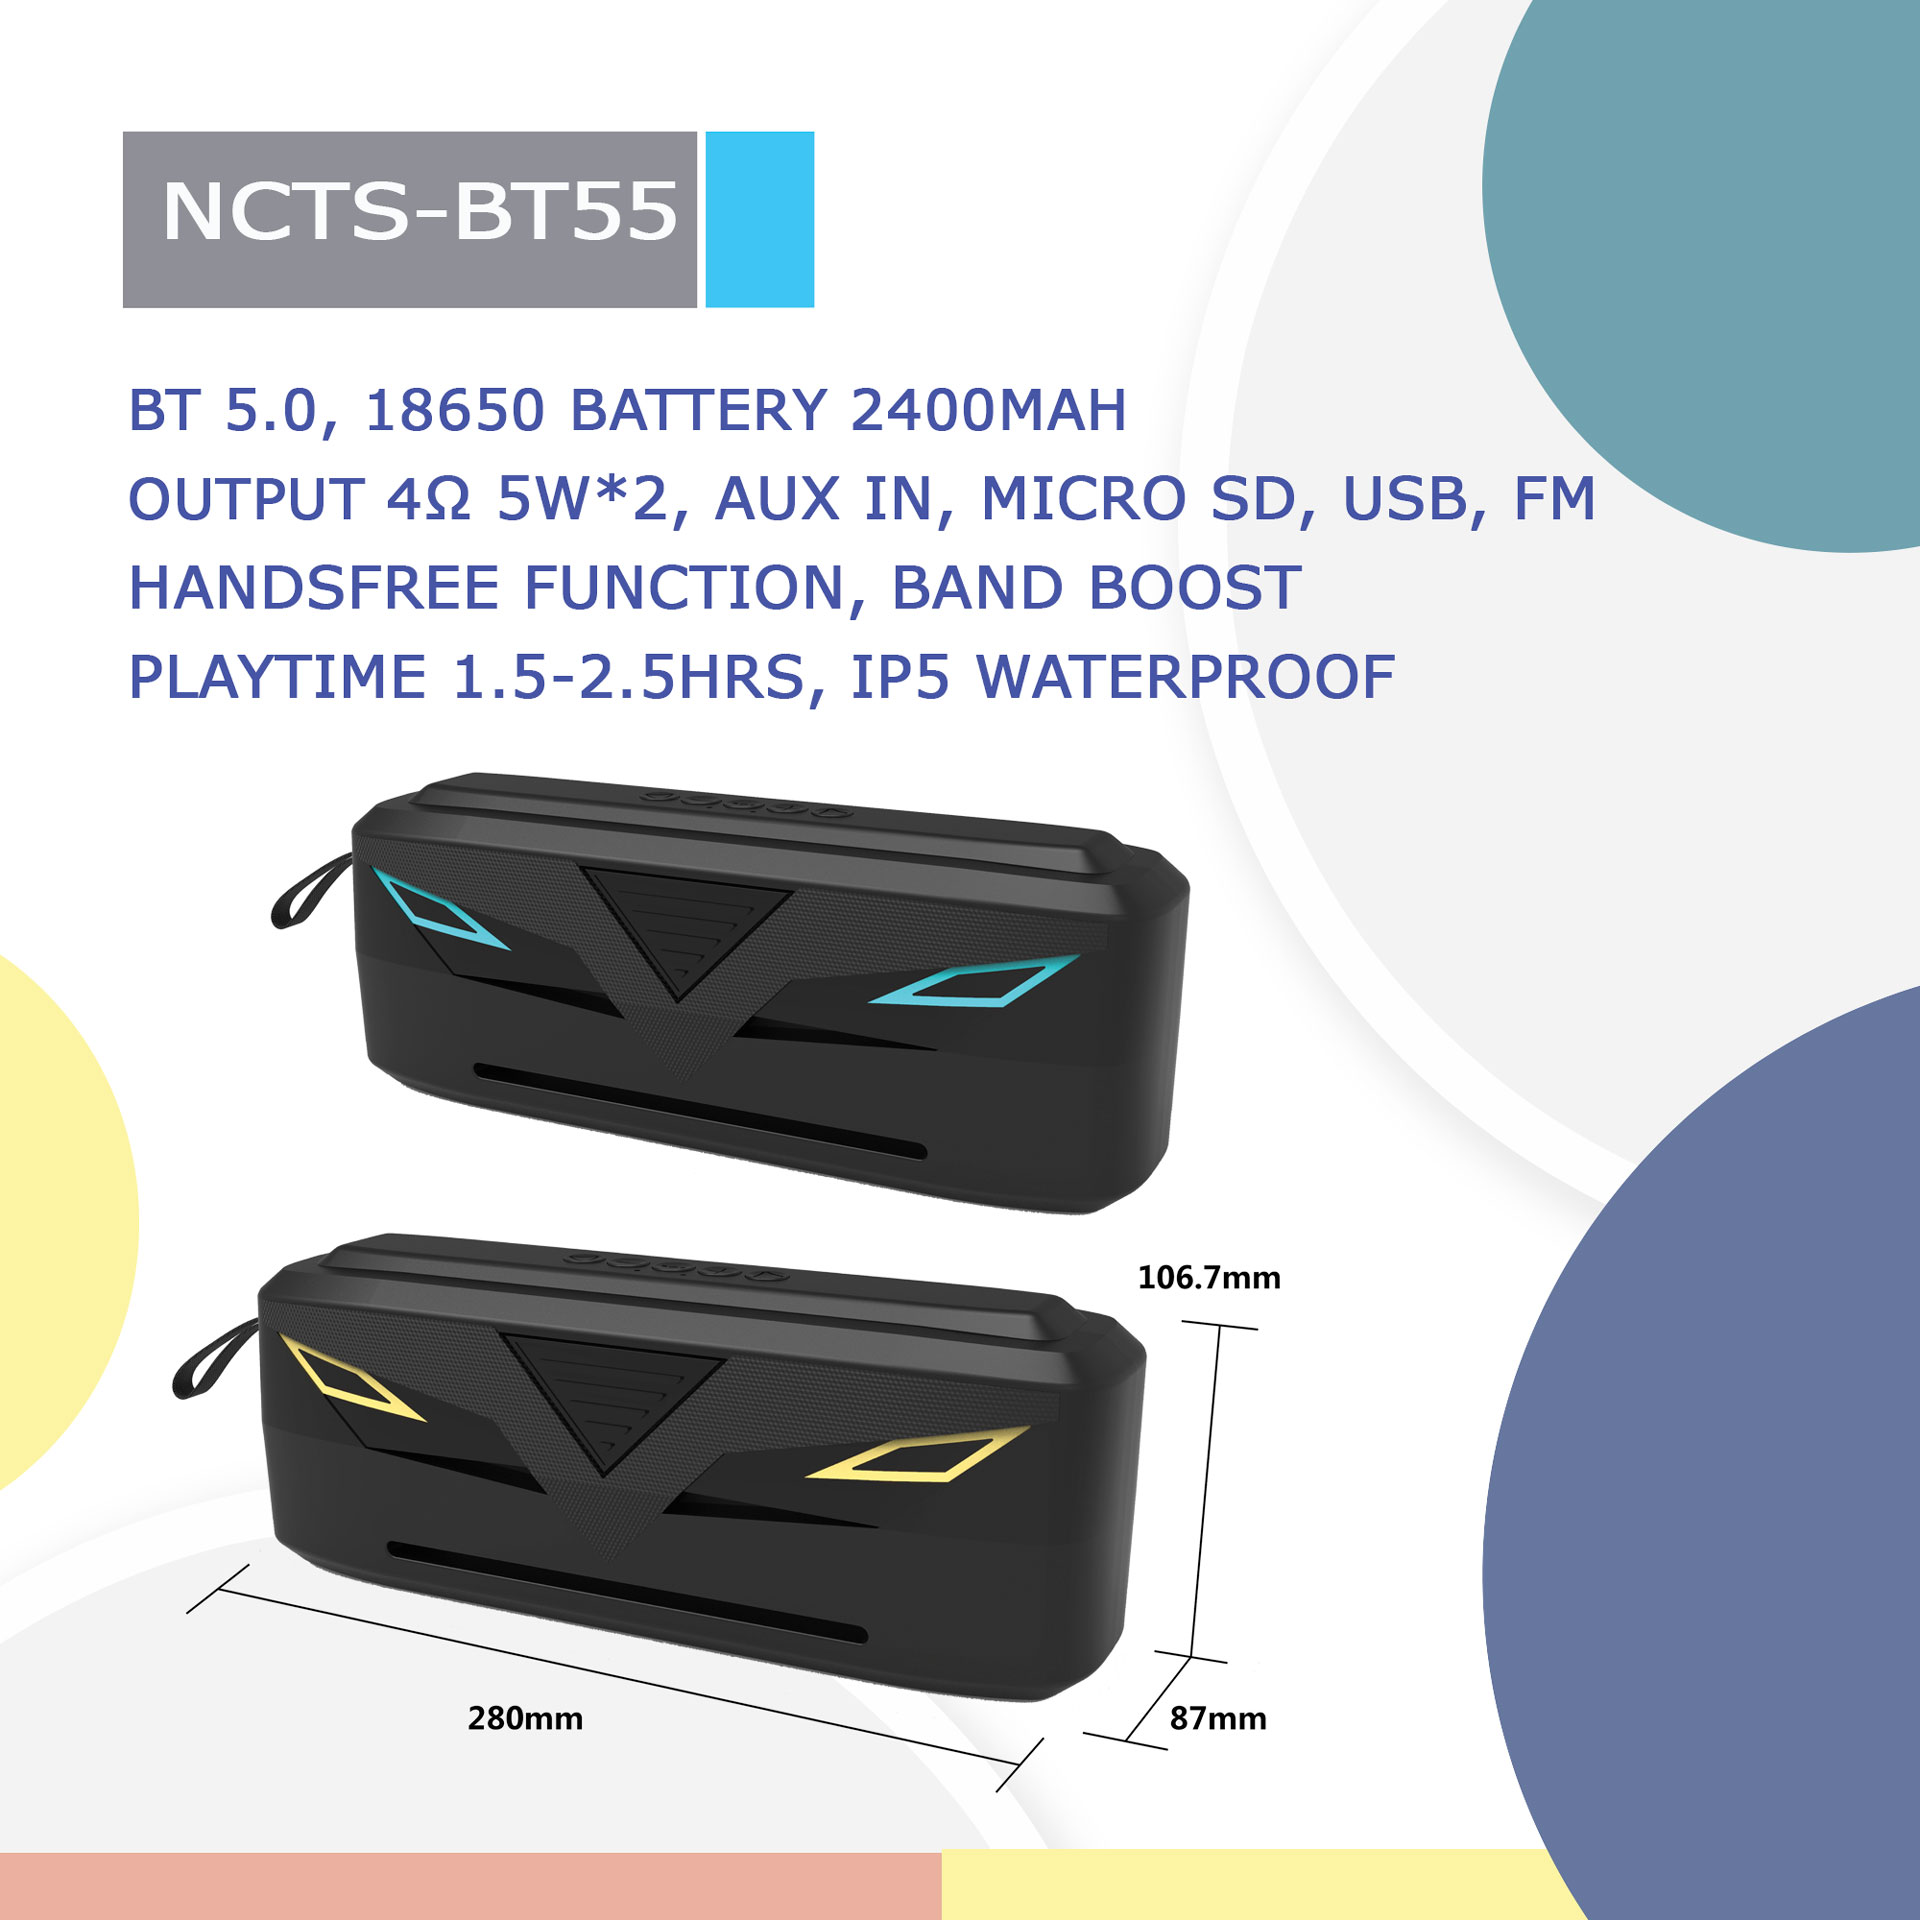 NCTS-BT55